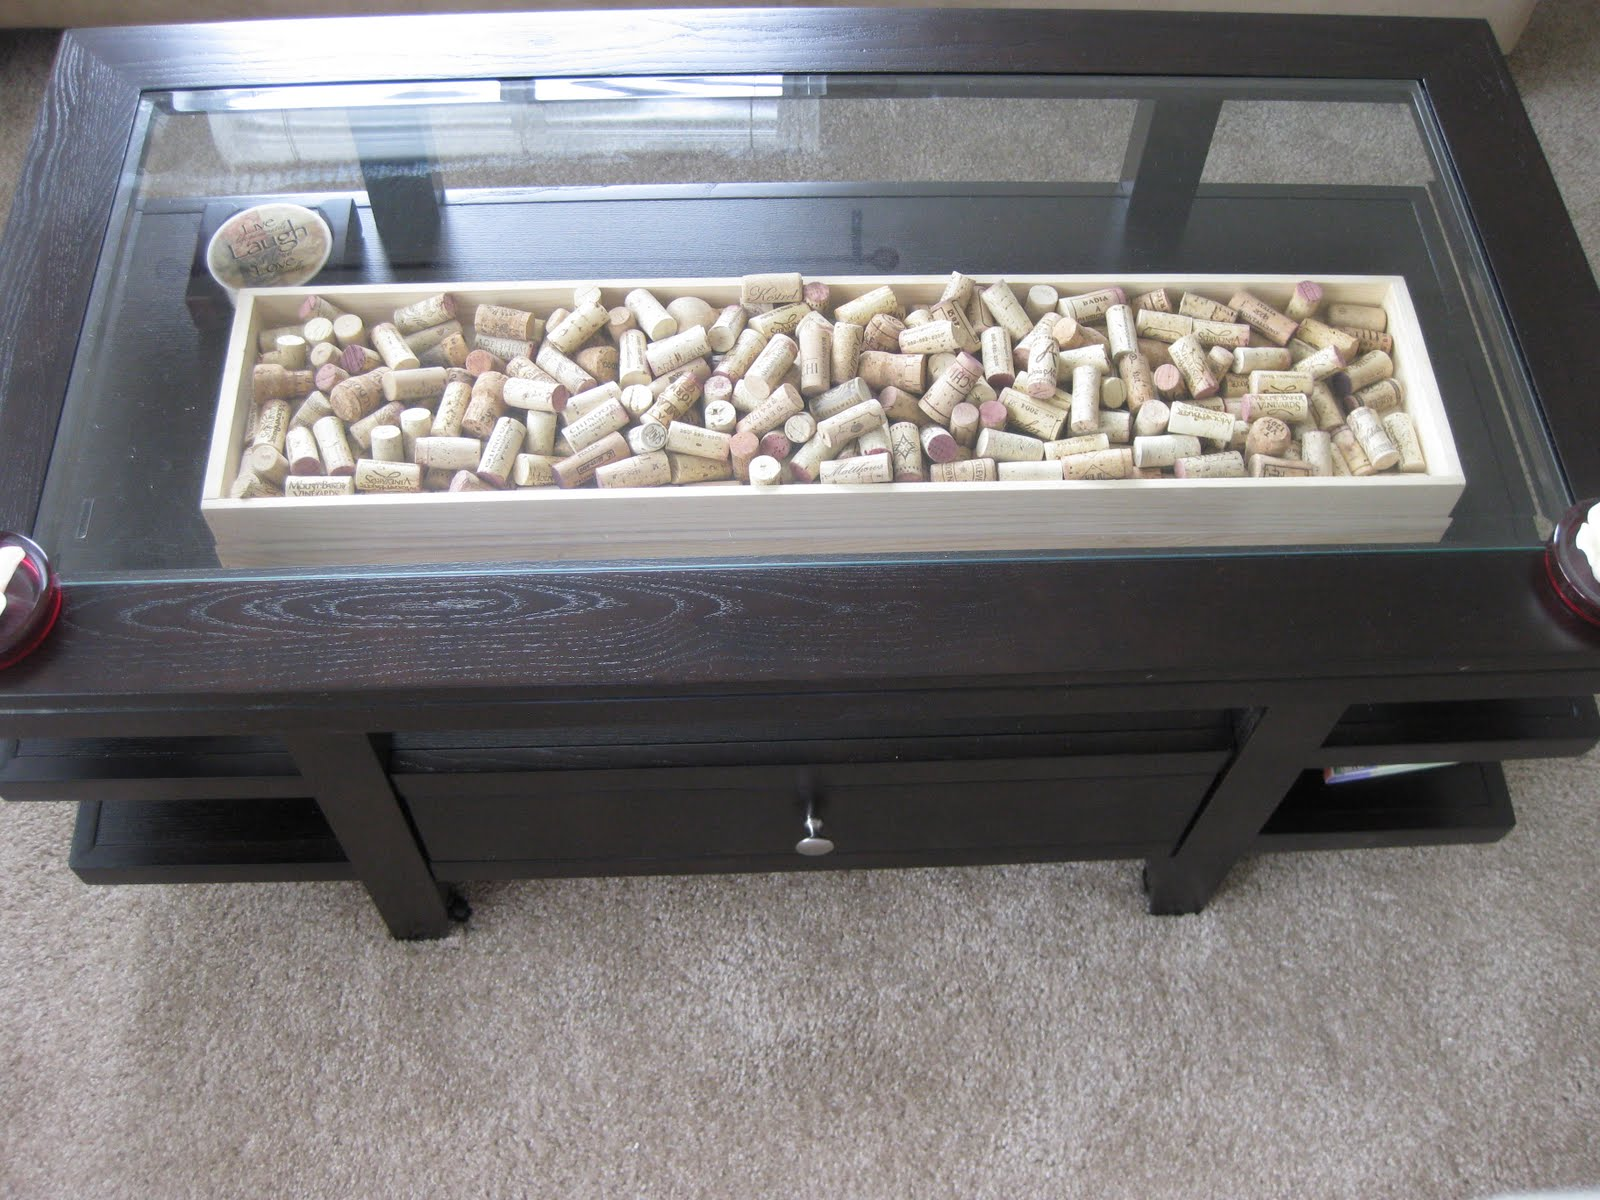 What To Do With Wine Corks?